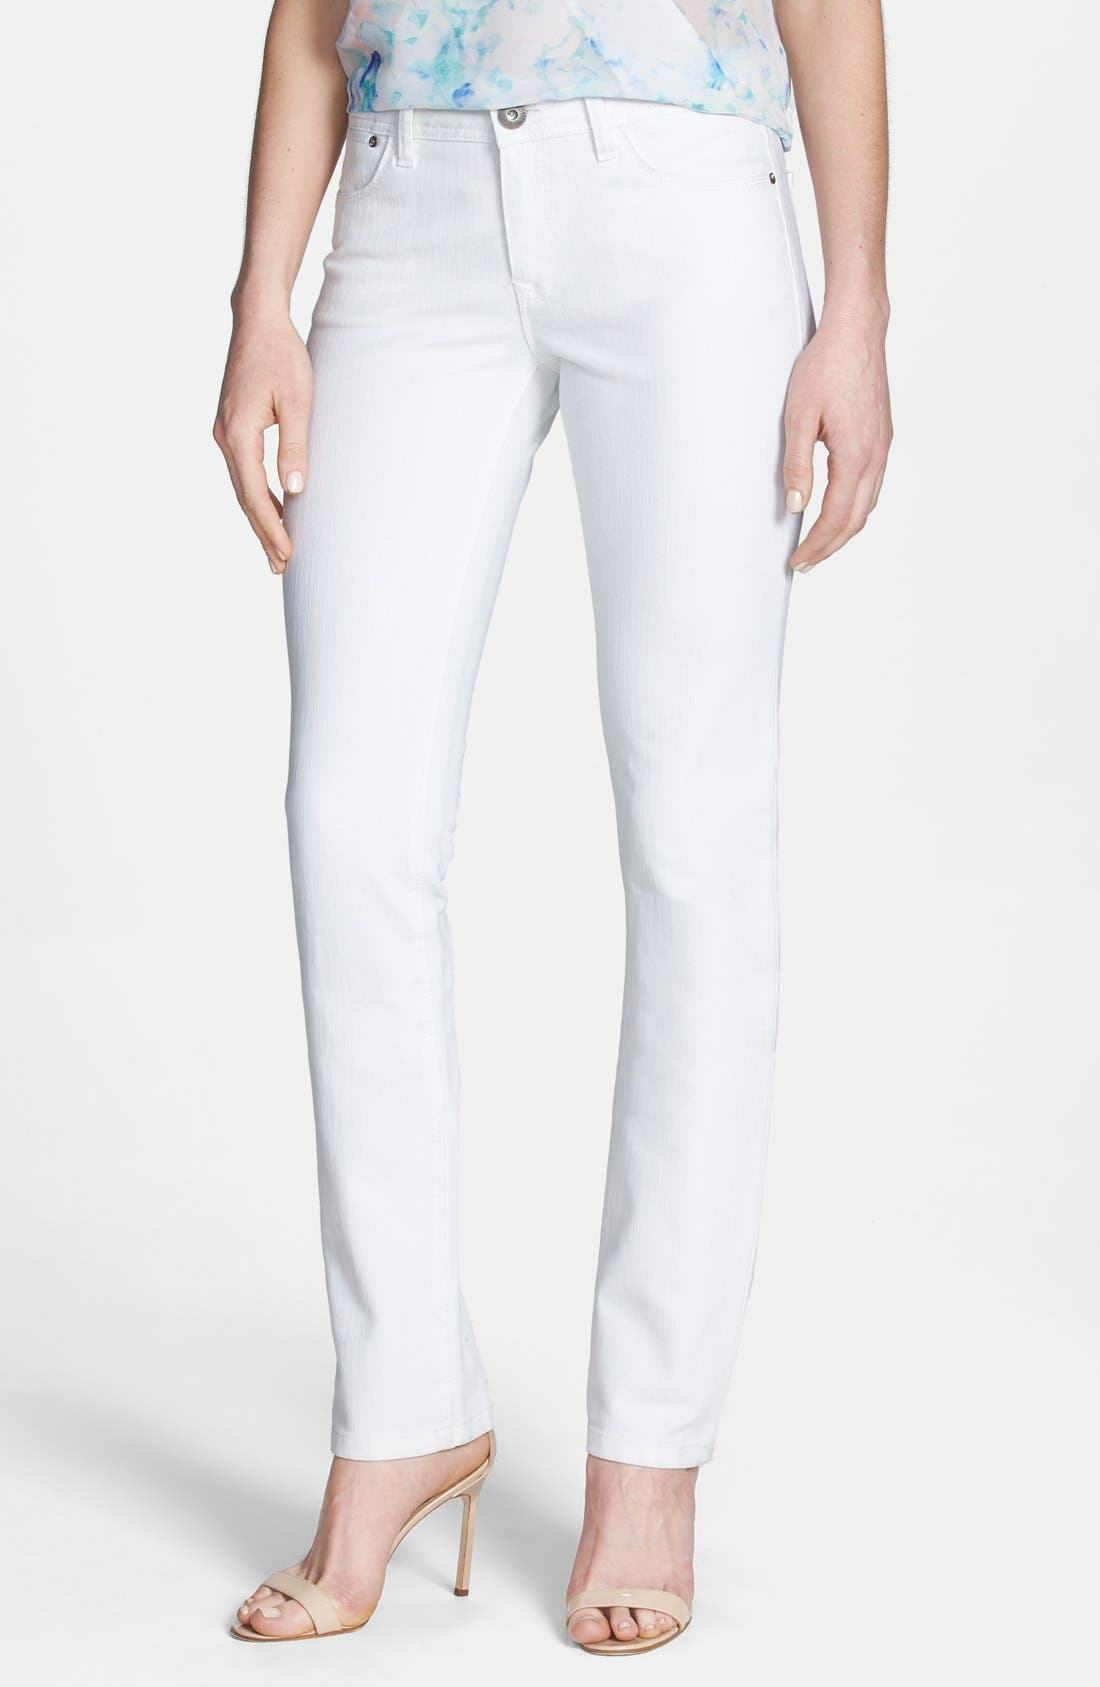 Alternate Image 1 Selected - DL1961 'Coco' Curvy Straight Jeans (Milk)